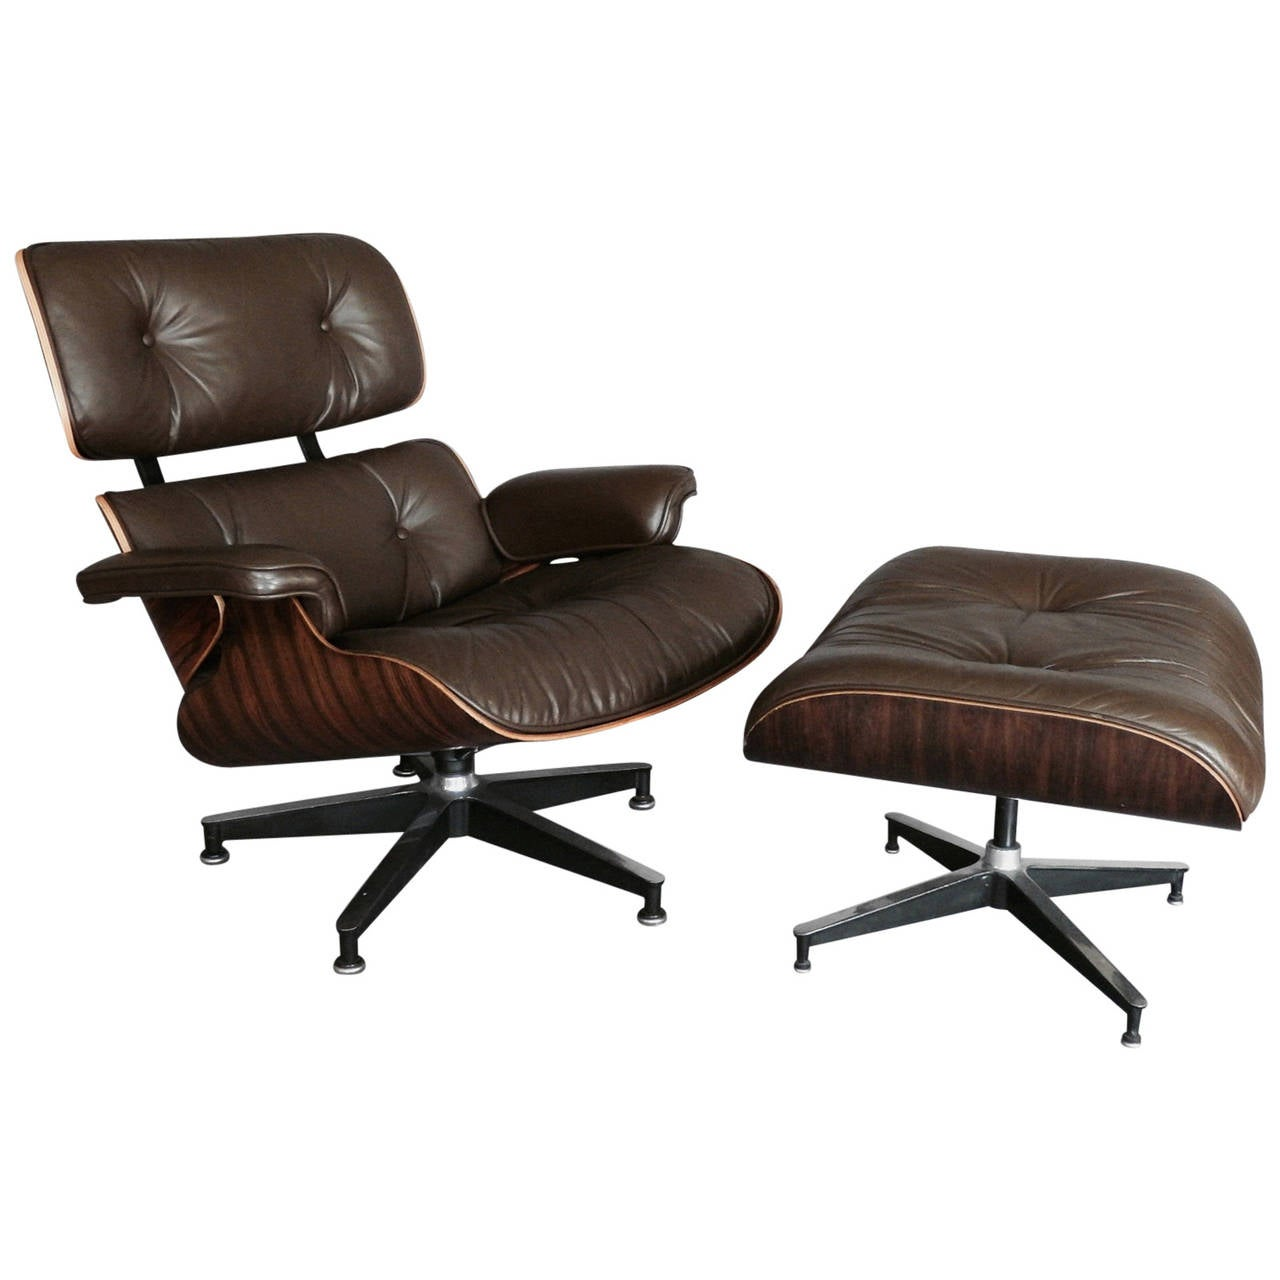 charles and ray eames rosewood 670 lounge chair at 1stdibs. Black Bedroom Furniture Sets. Home Design Ideas